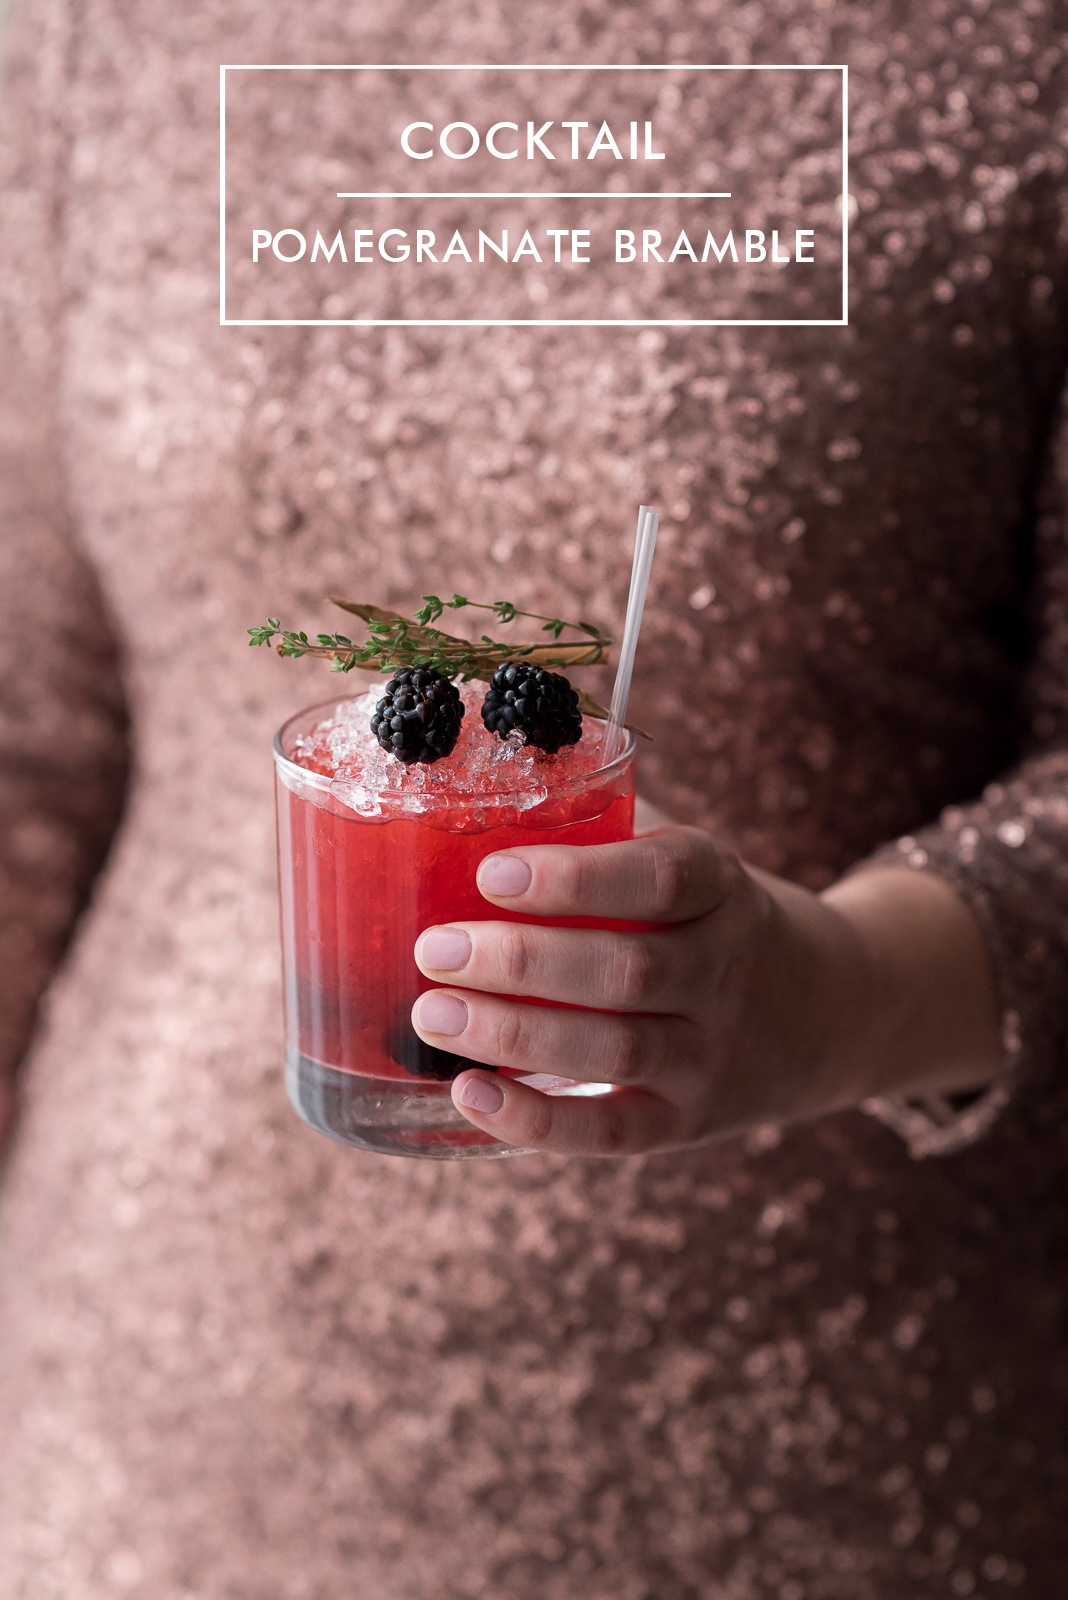 Contemporary Classic Christmas Cocktails - Pomegranate Bramble (4A)